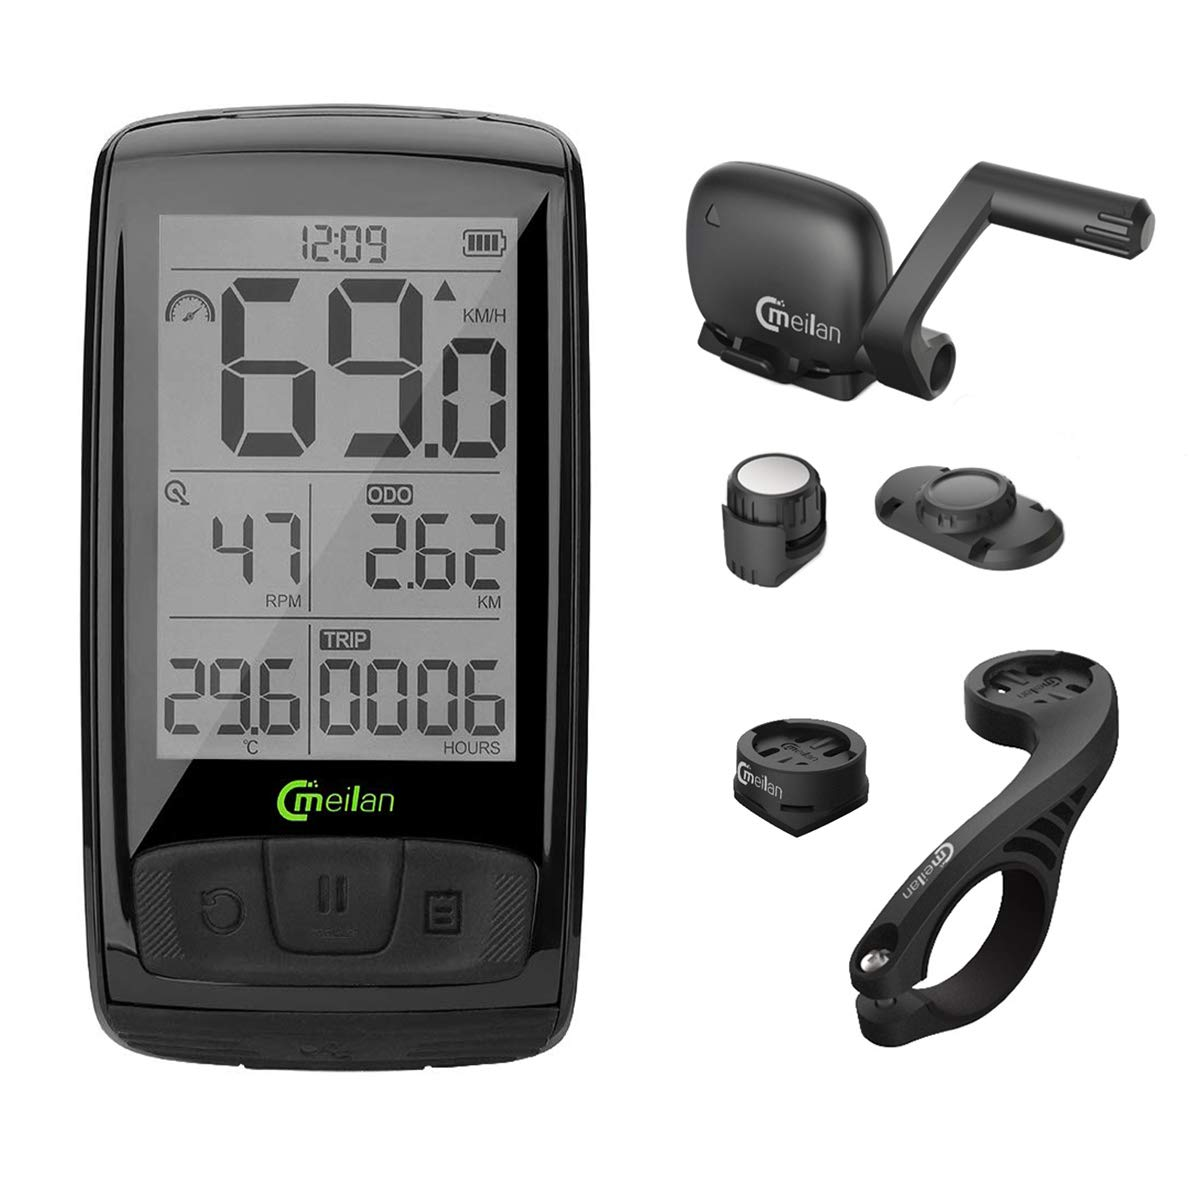 Meilan M4 Bike Computer Wireless 2.5 Inch IPX5 Waterproof Cycling Computer Bicycle Speedometer and Odometer Cycle Computer with ANT+ Speed & Cadence Sensor